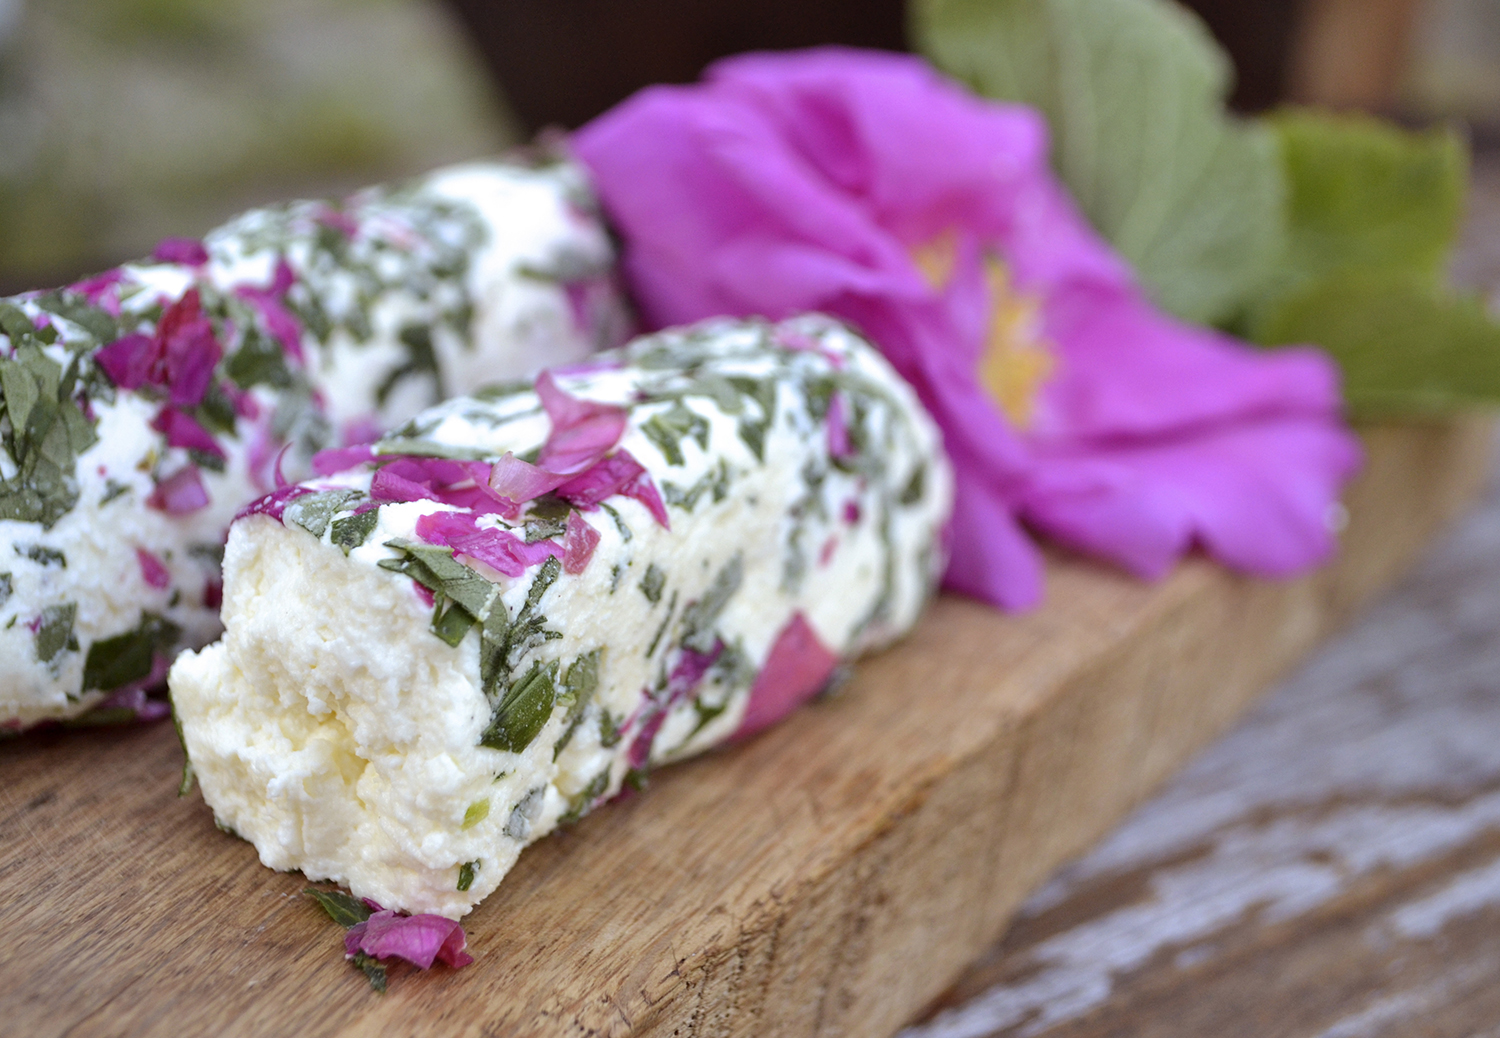 Rose Petal and Anise Hyssop Chevre